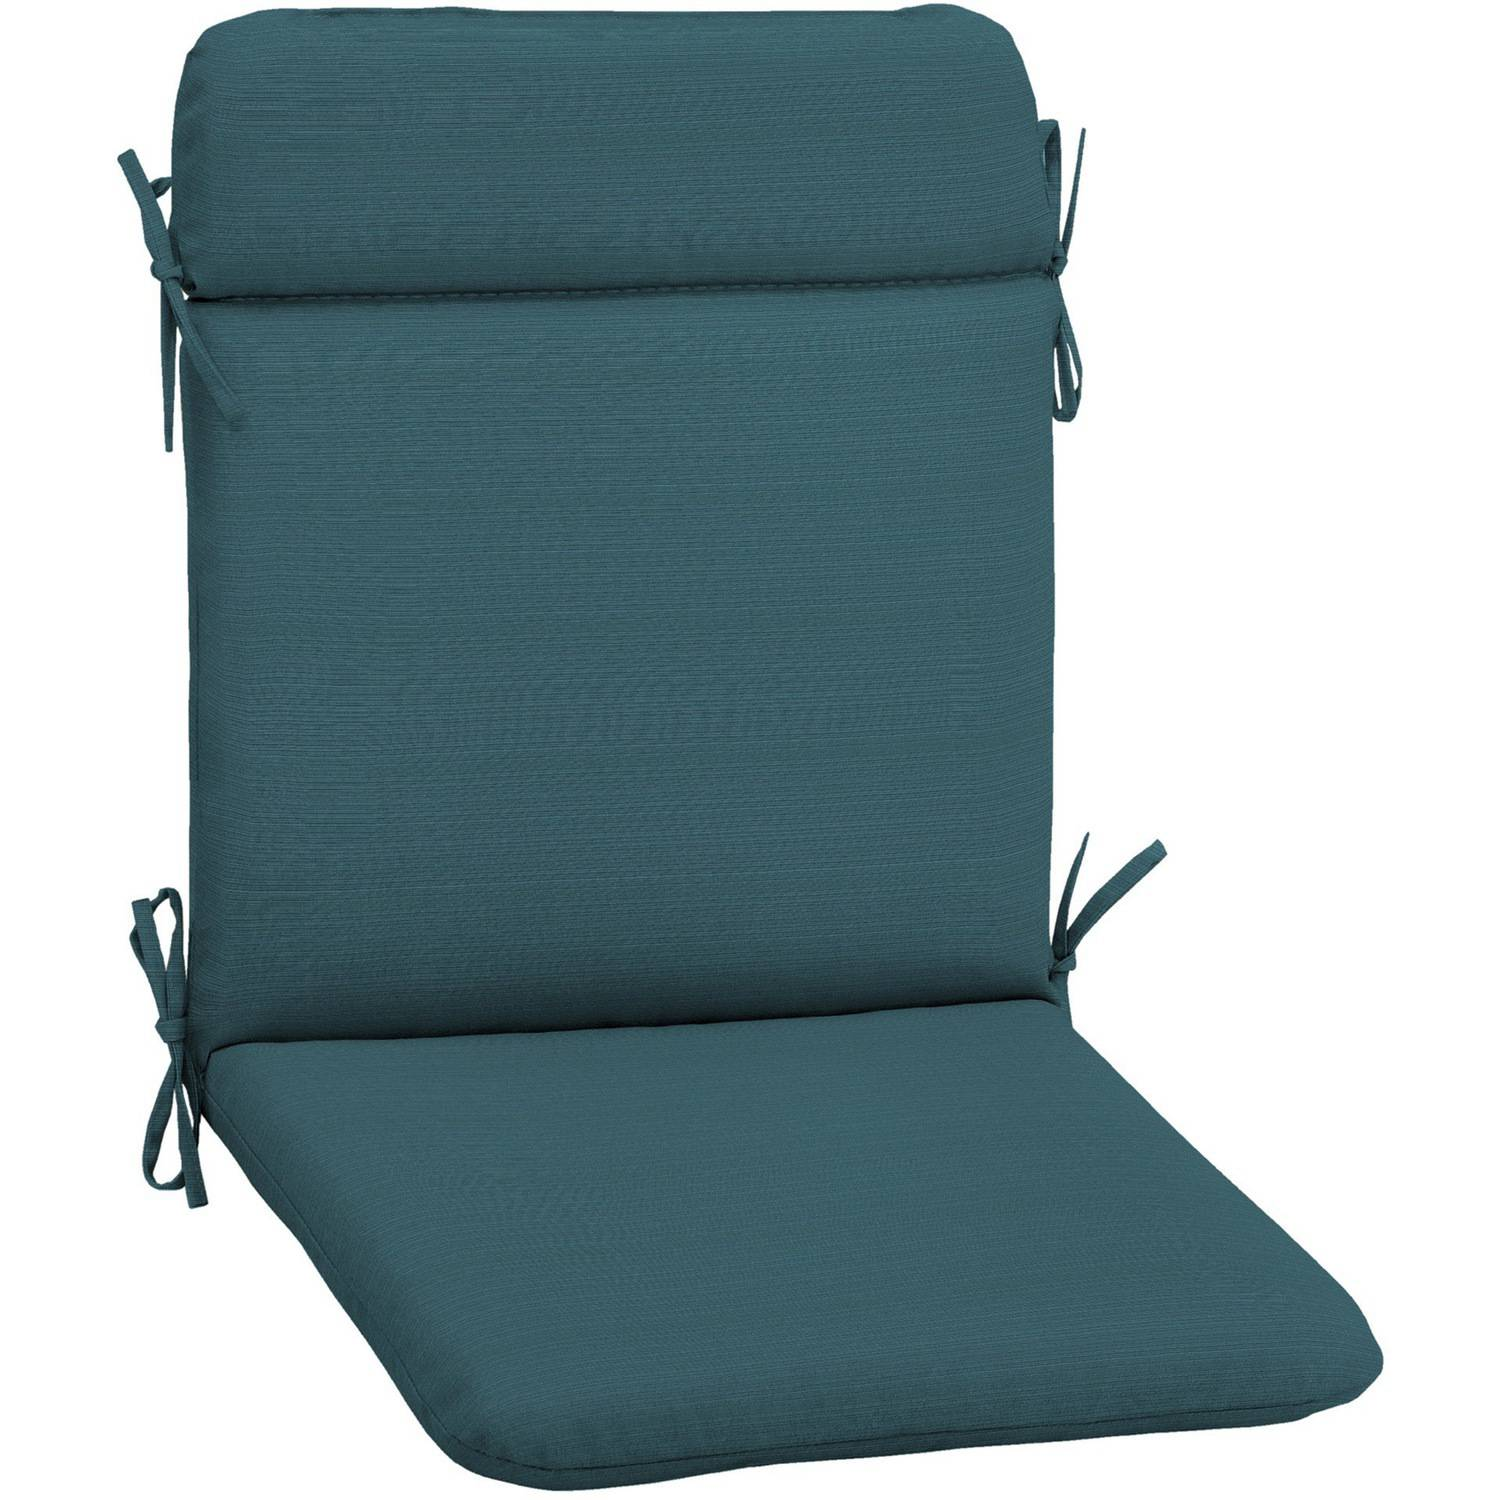 dining chair pads. mainstays outdoor patio reversible dining chair cushion, turquoise stripe - walmart.com pads r